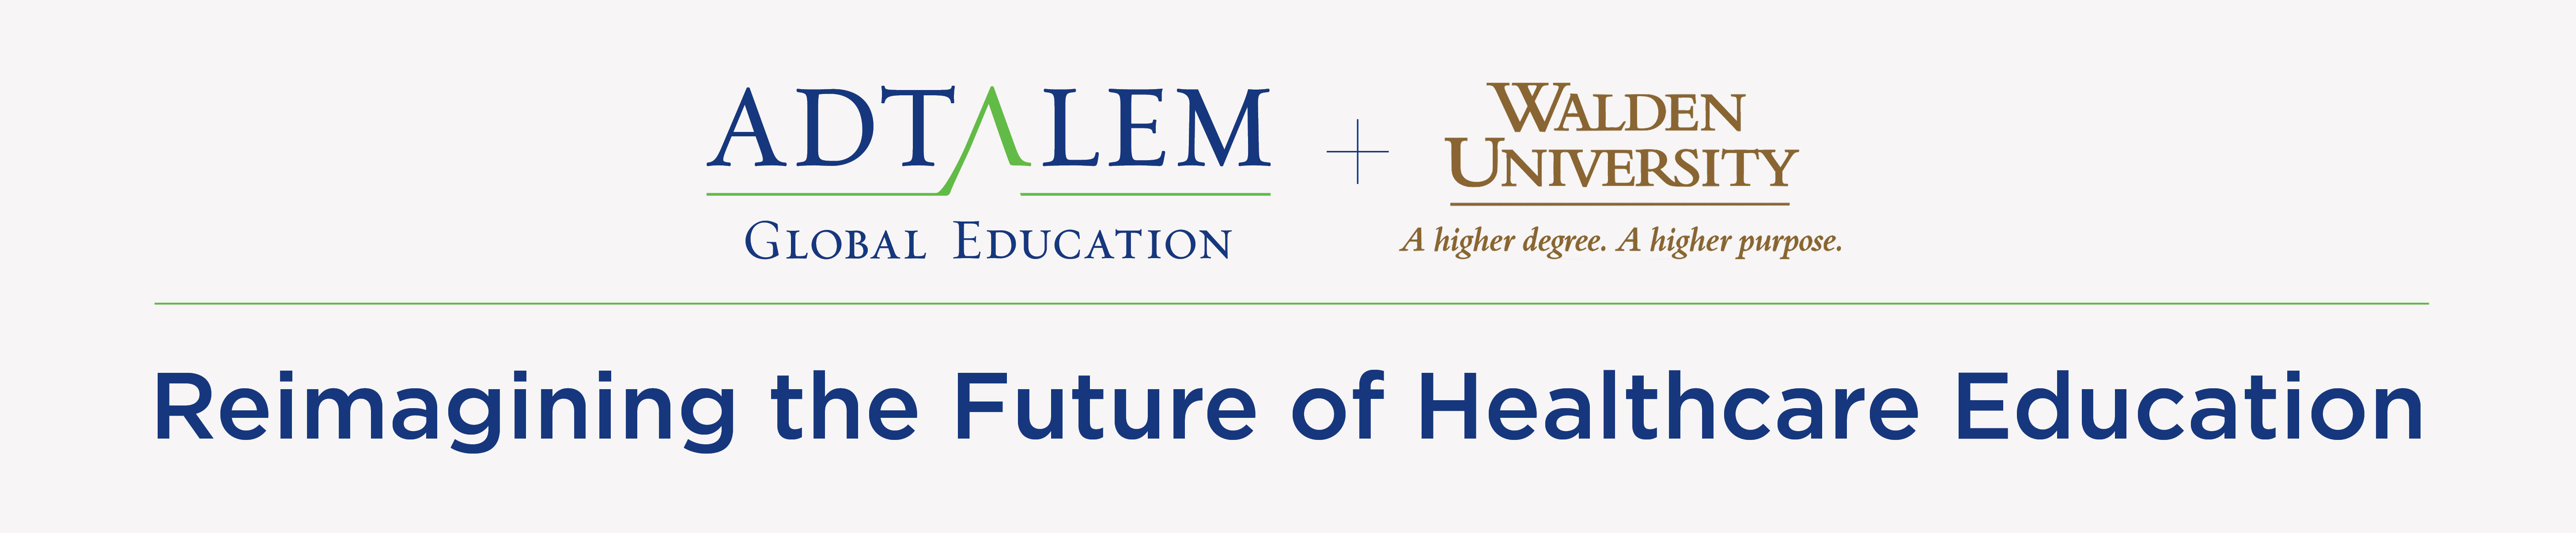 Reimagining the Future of Healthcare Education